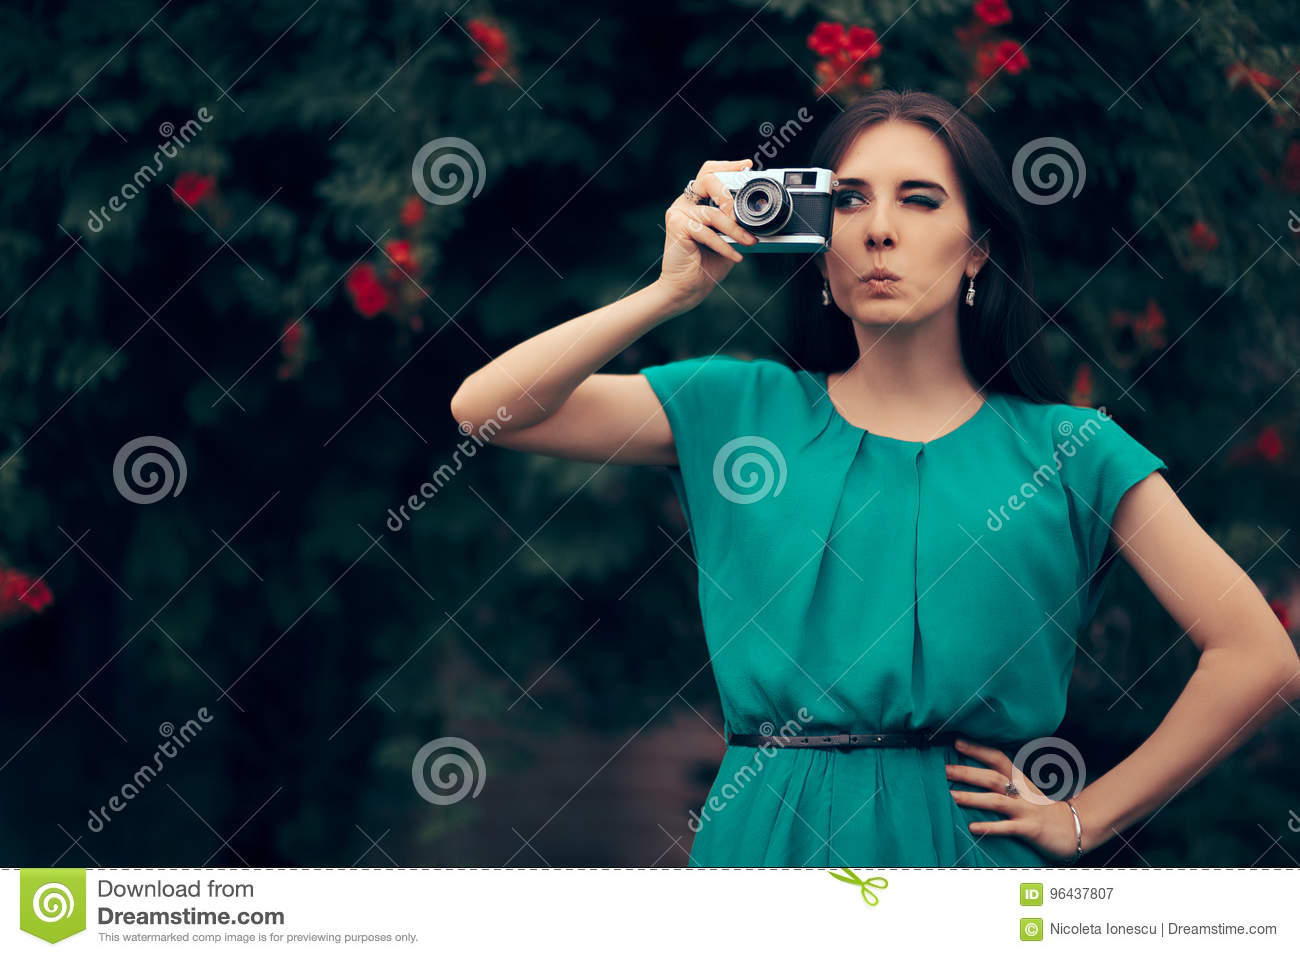 Funny Woman With Vintage Camera At A Garden Party Event Stock Image ...